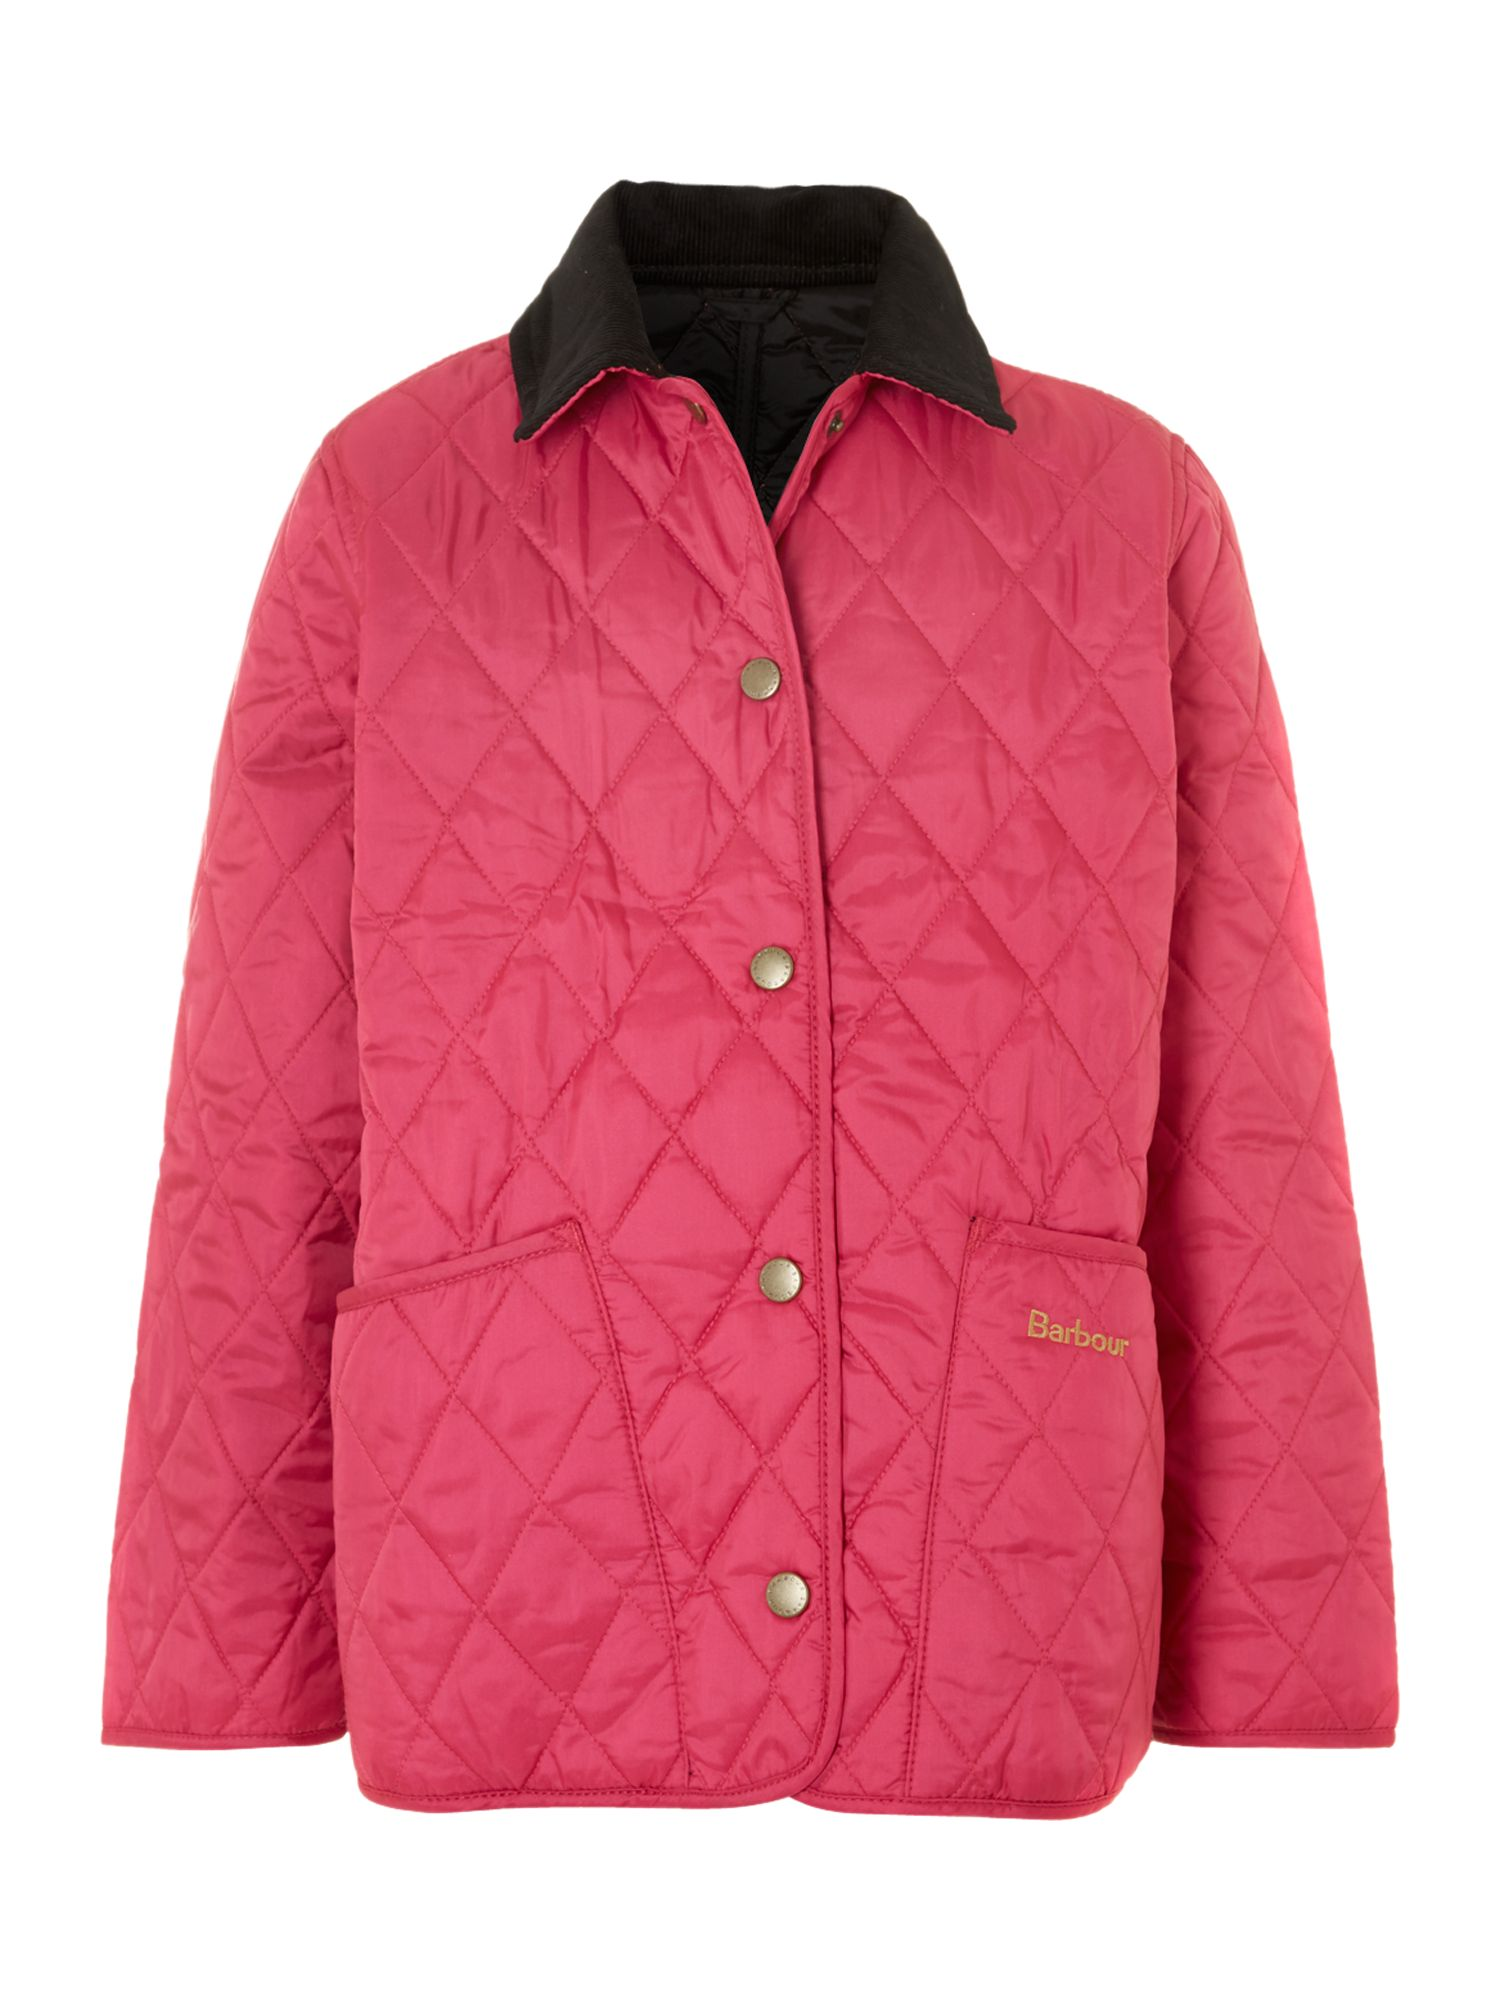 With a flattering tailored cut, this quilted jacket features a permanent hood and flap pockets to protect you from cold winds while the contrast trims and high low hem add just the right touch of style to keep you on-trend with the latest fashion.